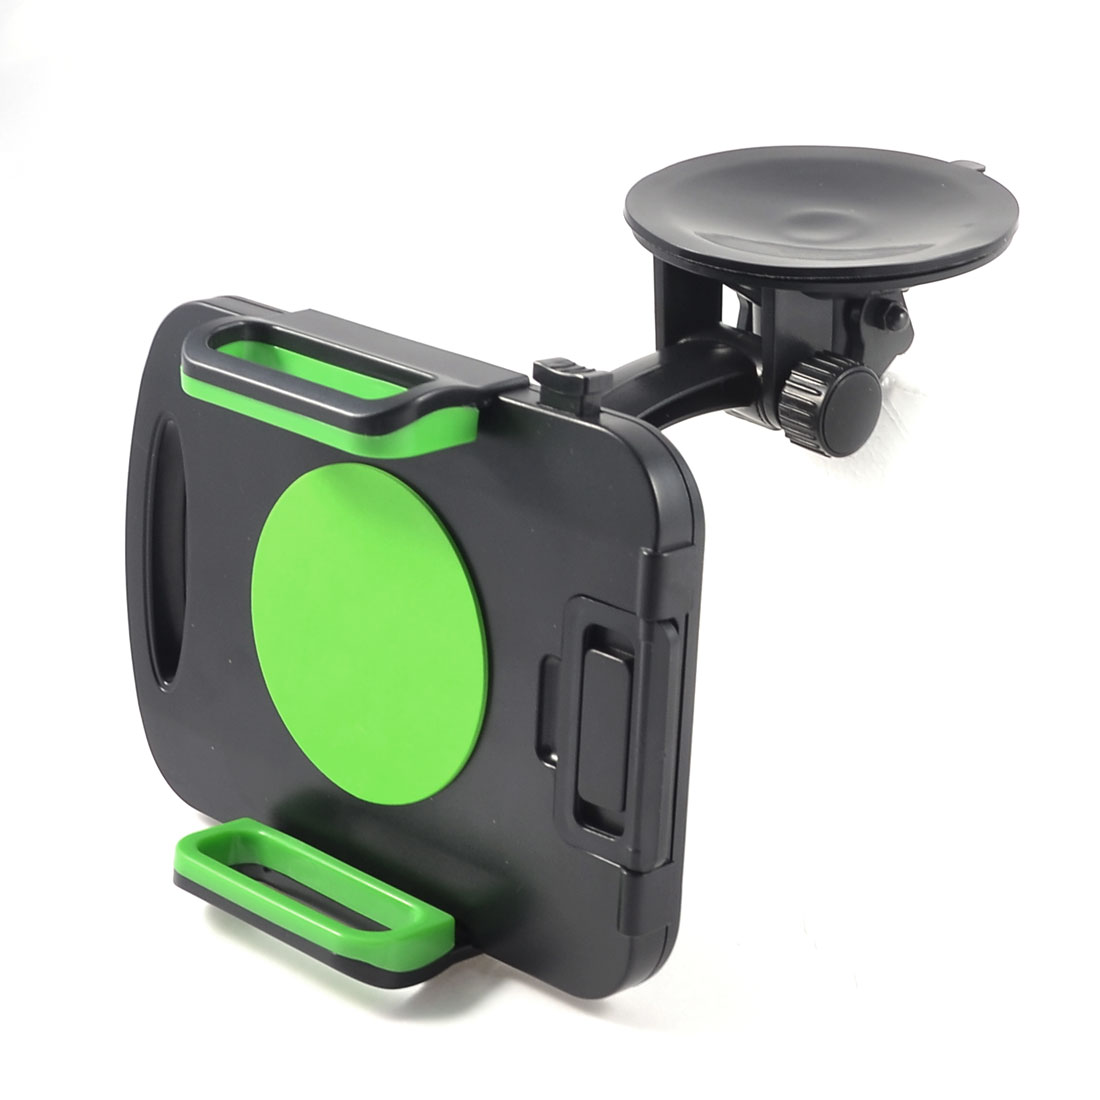 Tablet PC Suction Windshield Mount Holder Cradle Black Green for Apple iPad 2 3